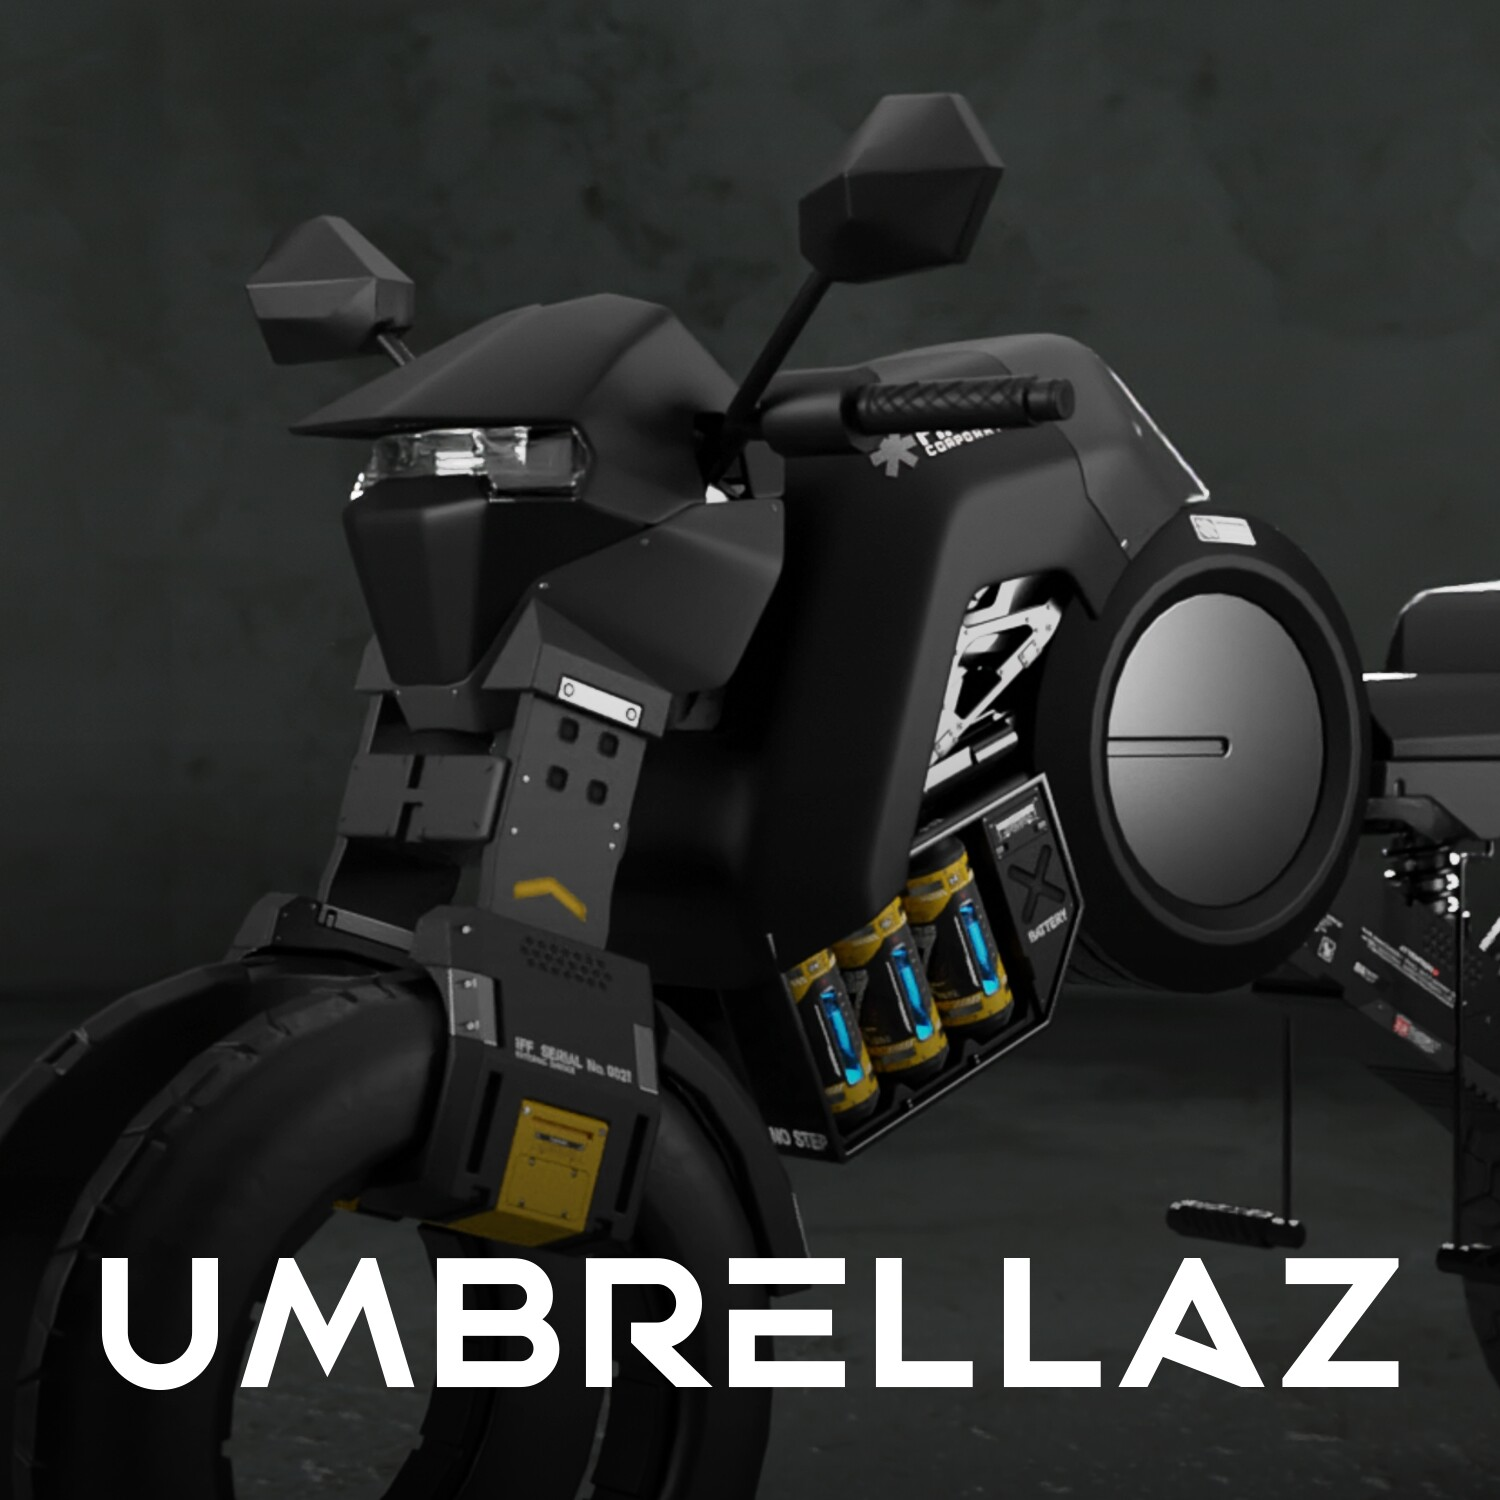 UMBRELLAz - Electric Motorcycle 01